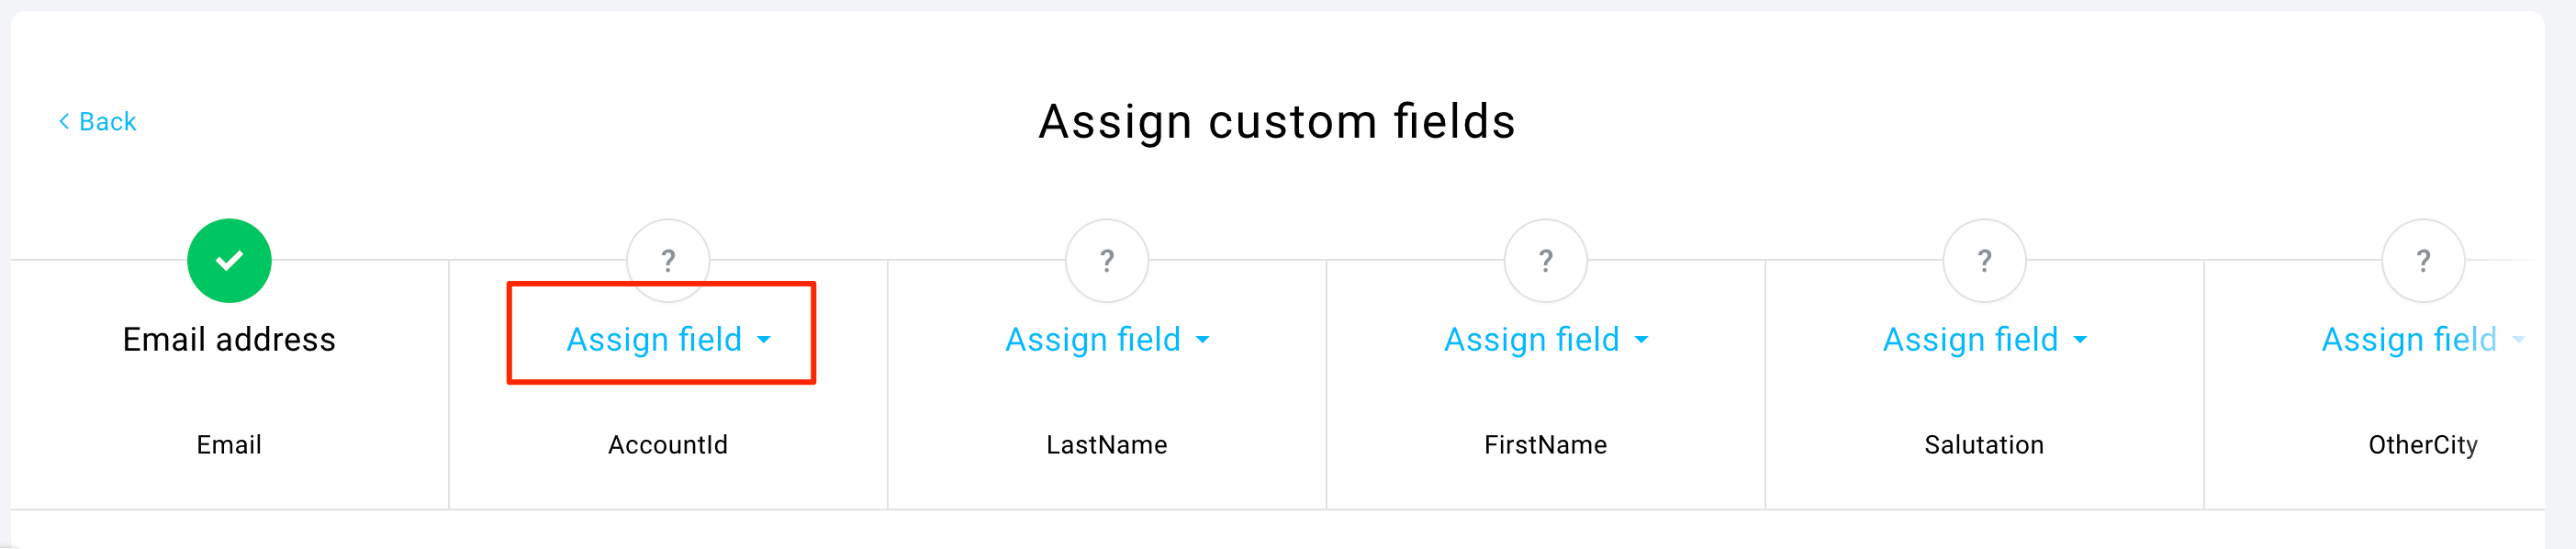 Mapping custom fields